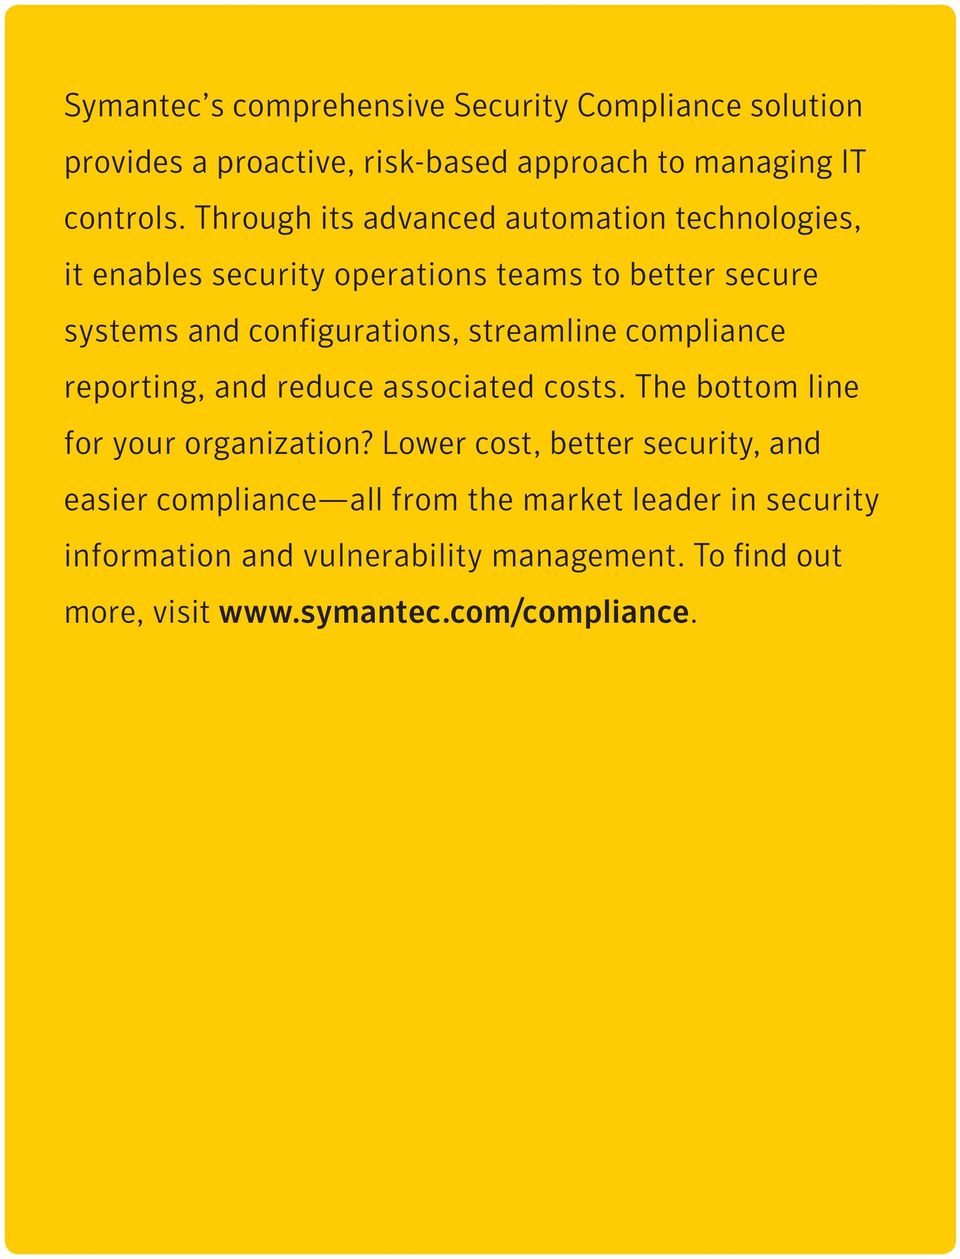 streamline compliance reporting, and reduce associated costs. The bottom line for your organization?